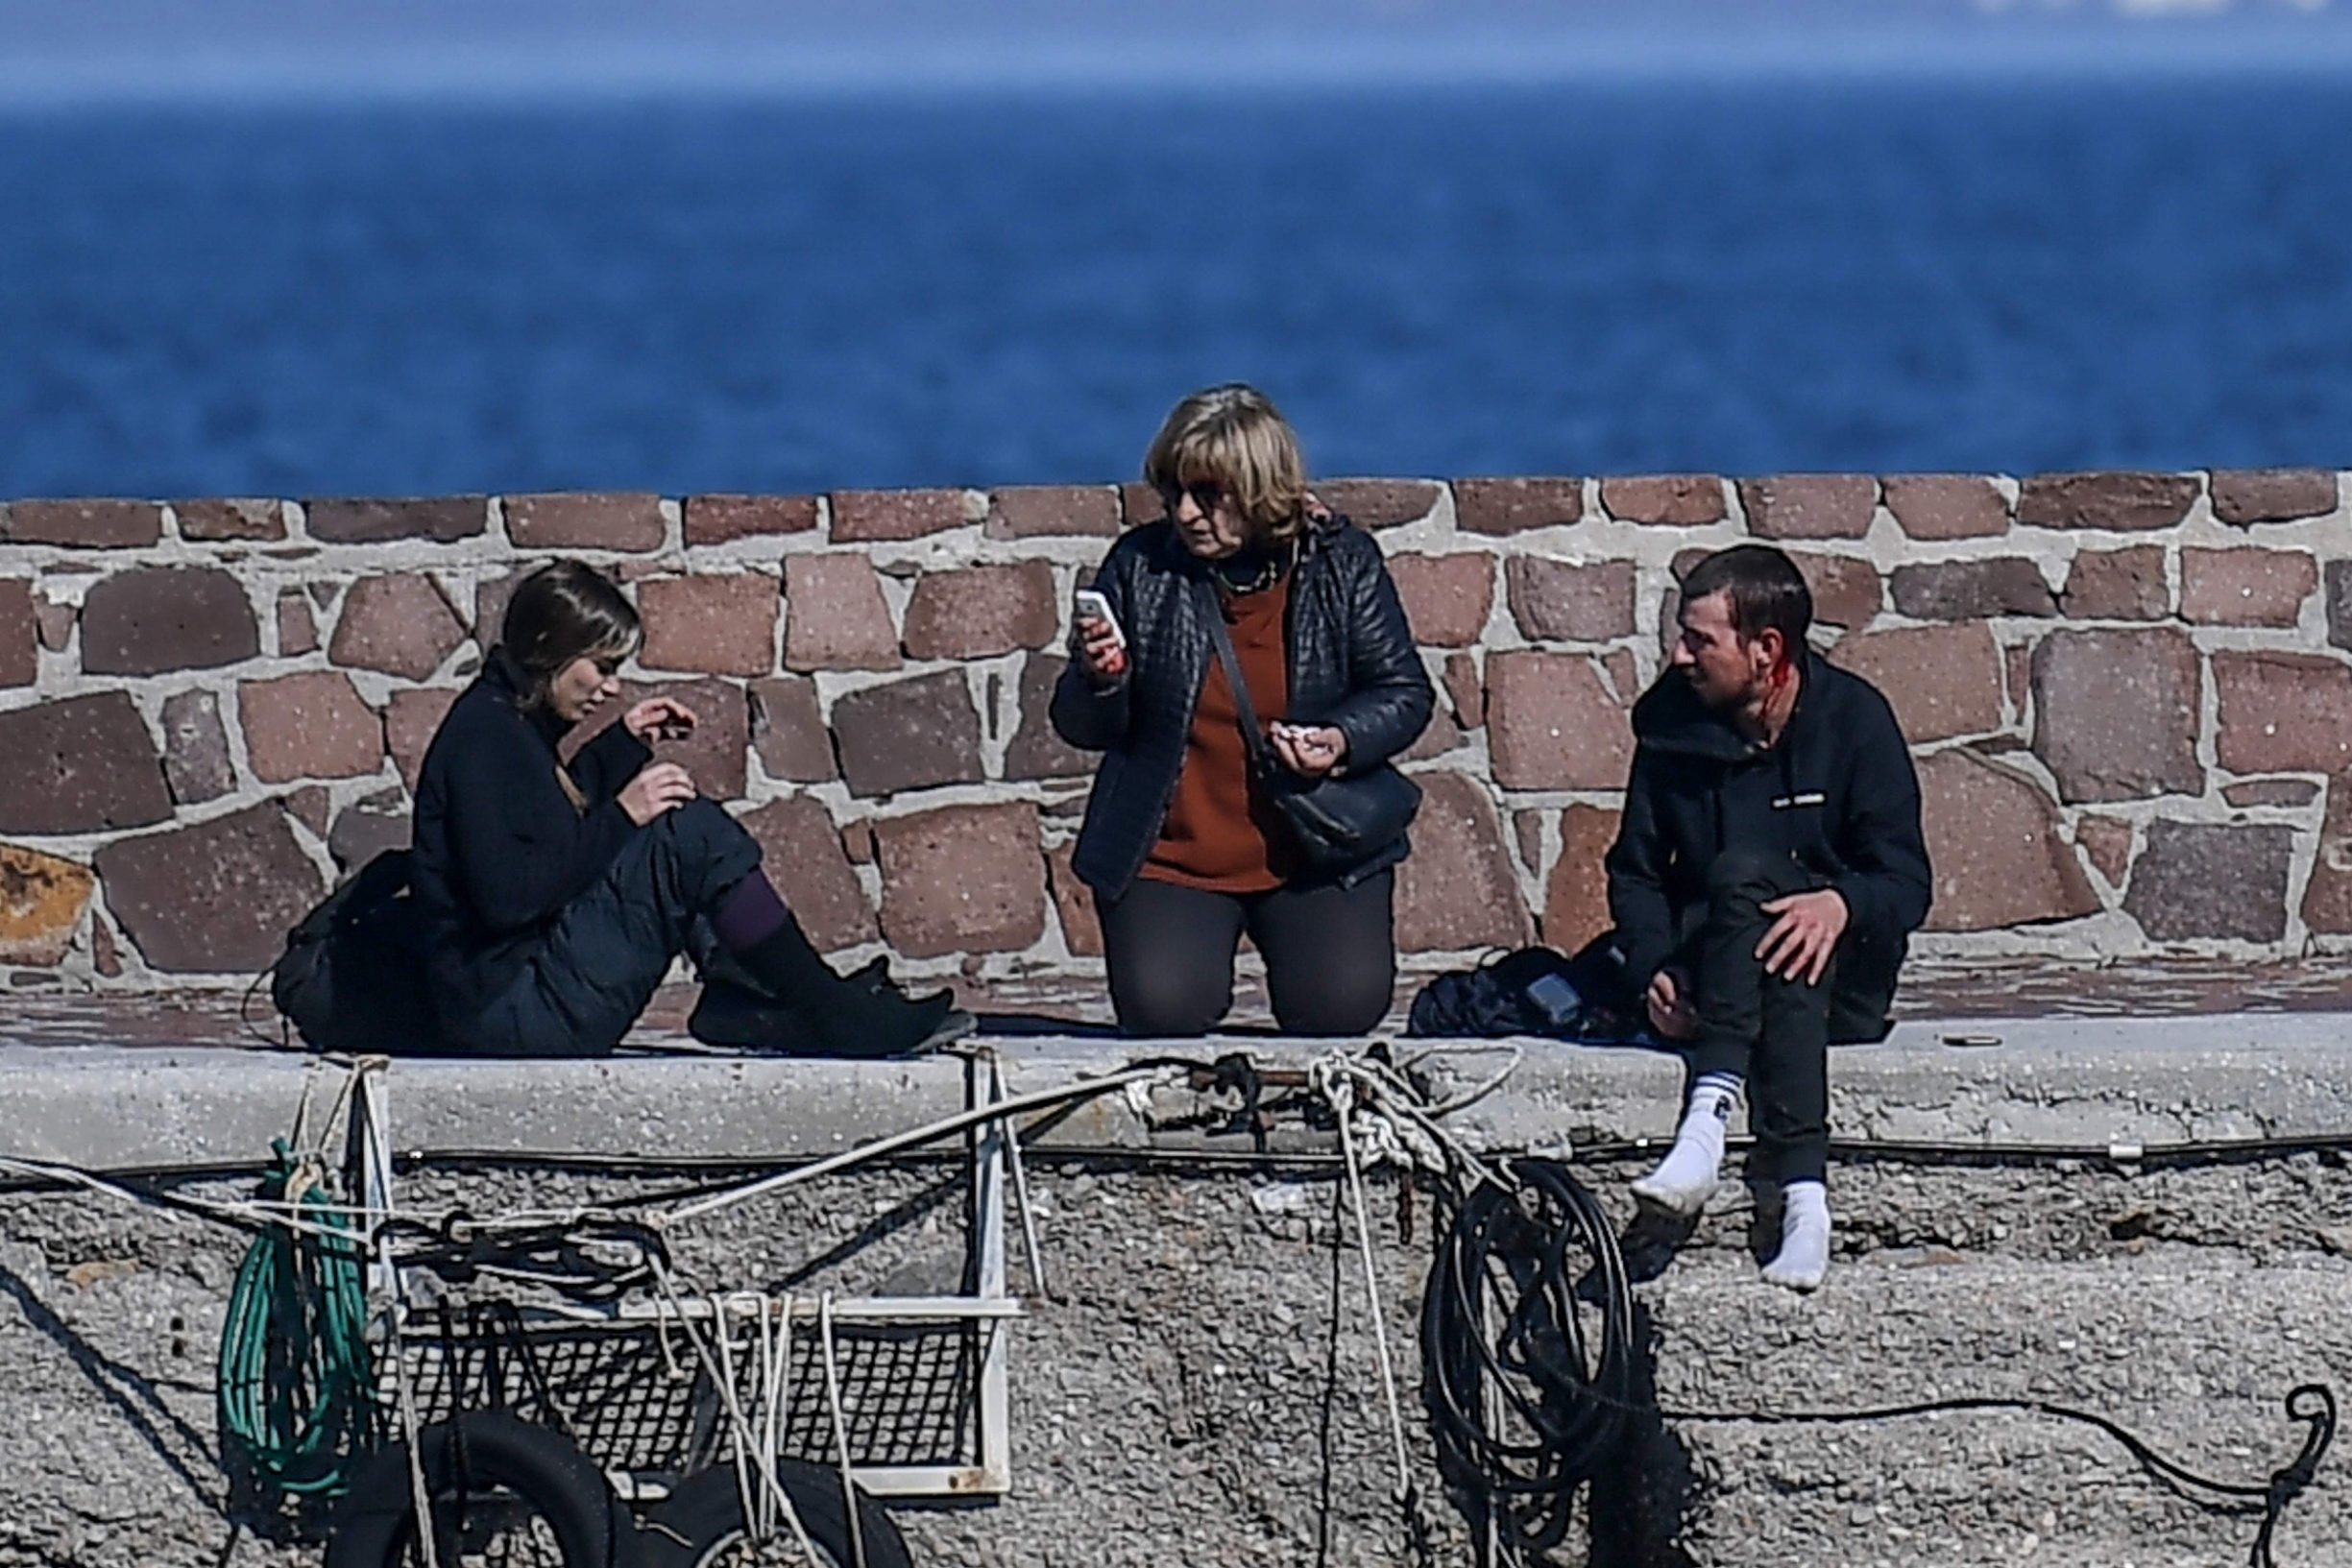 A journalist (R) receives assistance from two women after being attacked by residents who are trying to prevent migrants from disembarking on the Greek island of Lesbos, on March 1, 2020. - The United Nation called on March 1 for calm and urged states to refrain from